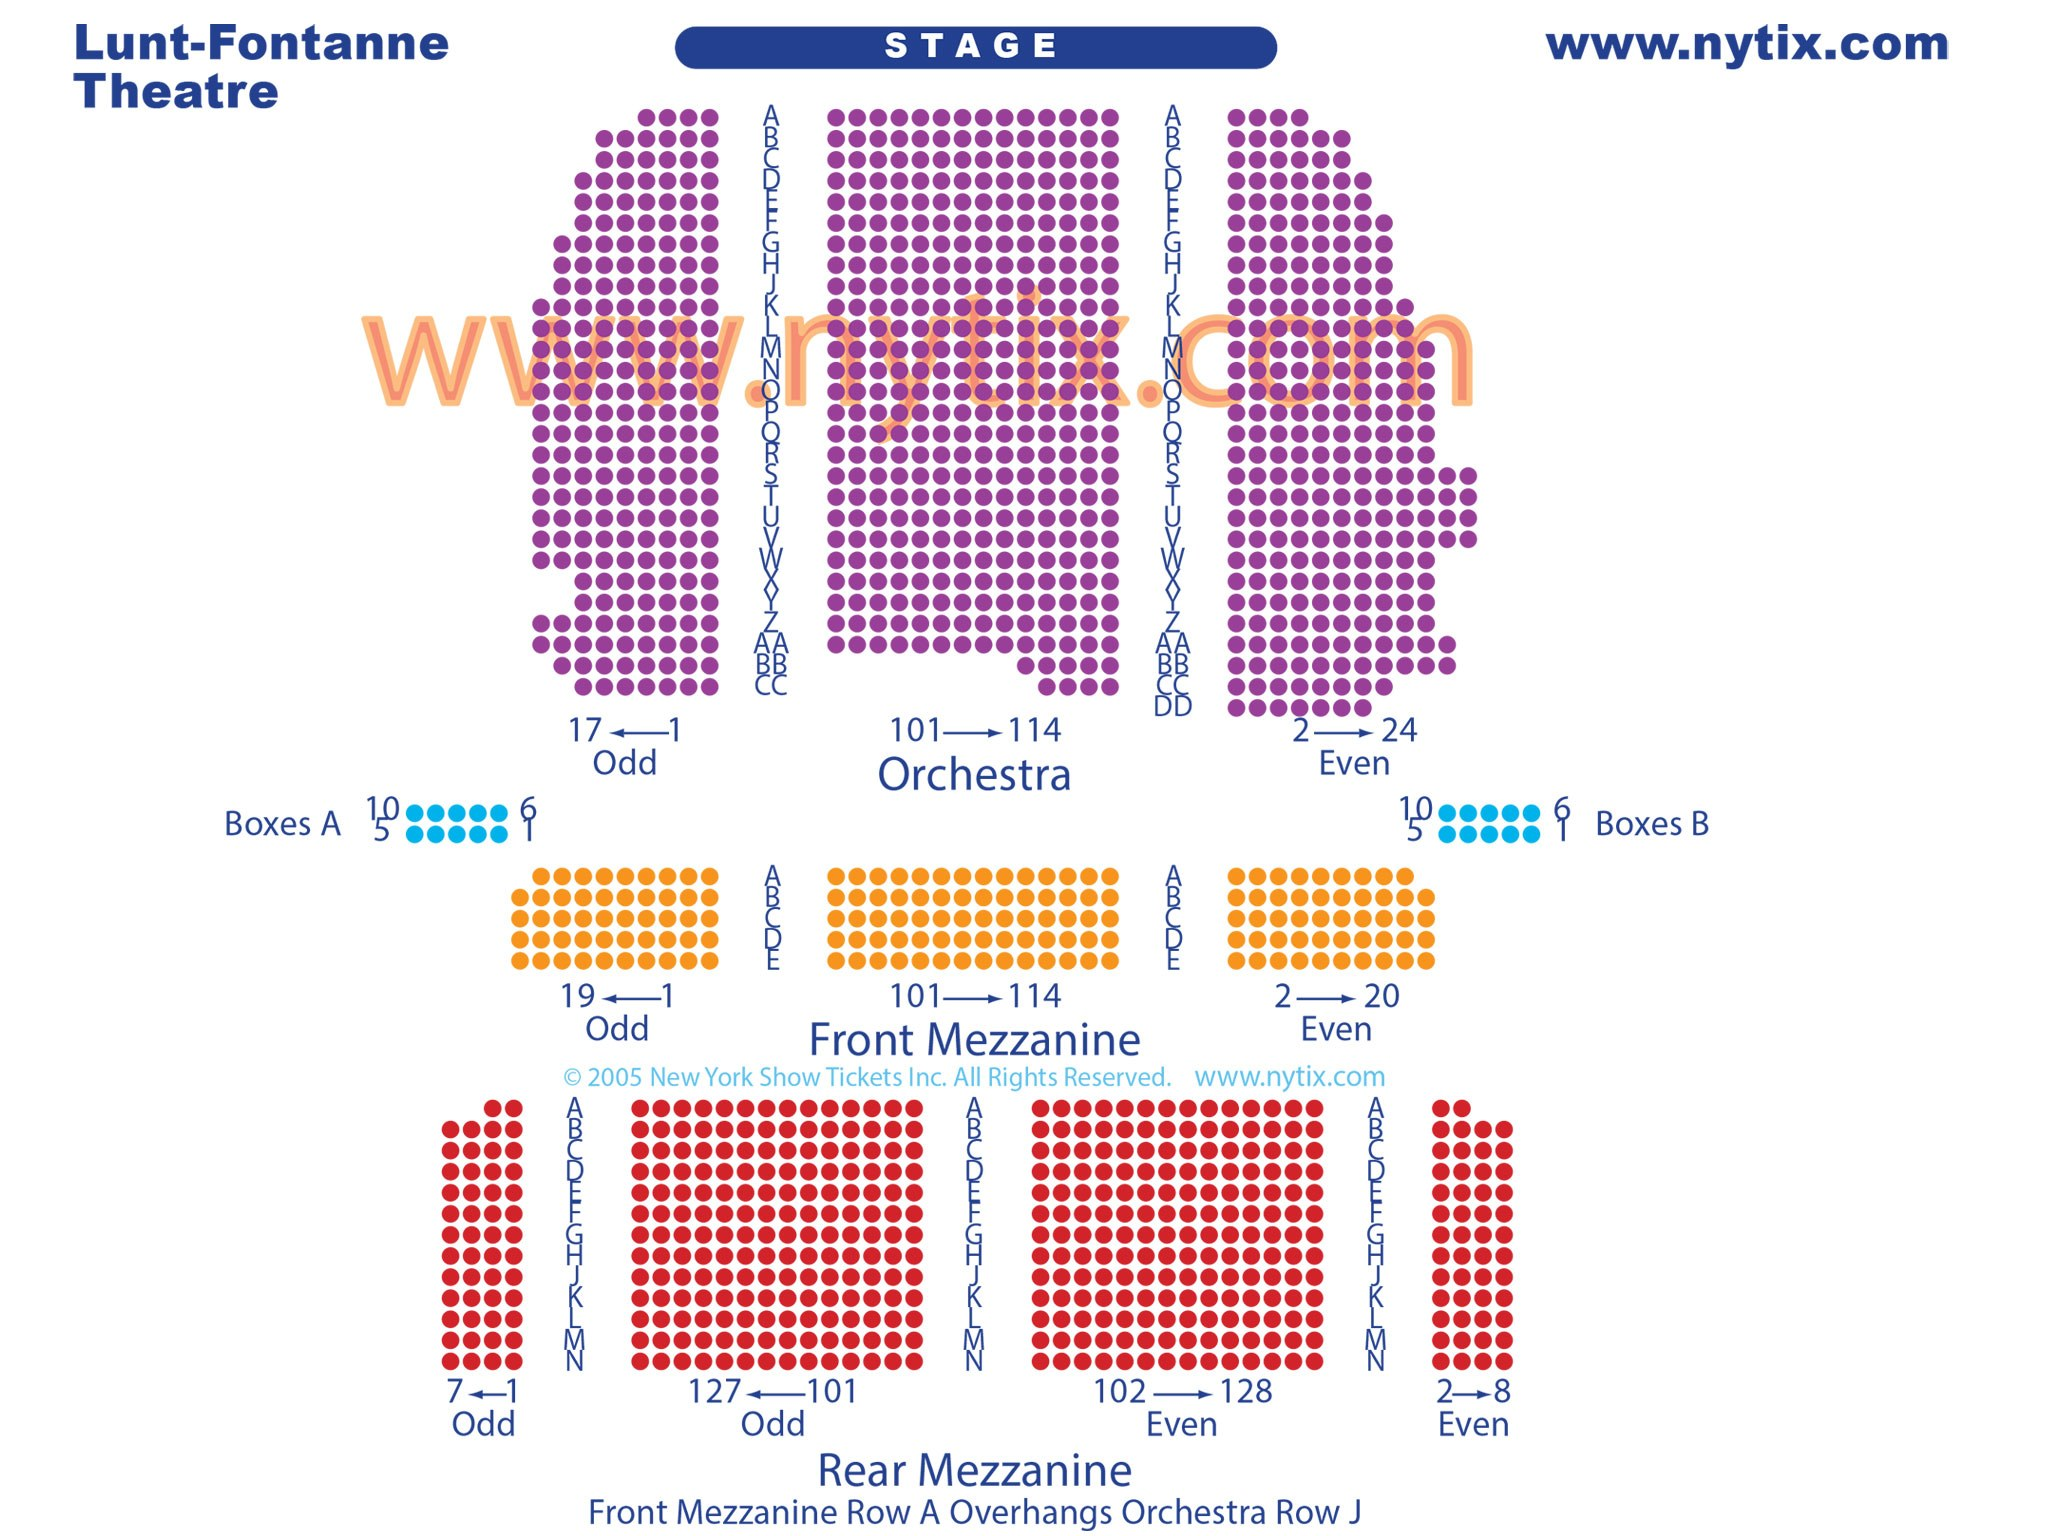 Lunt Fontanne Theatre Seating Chart